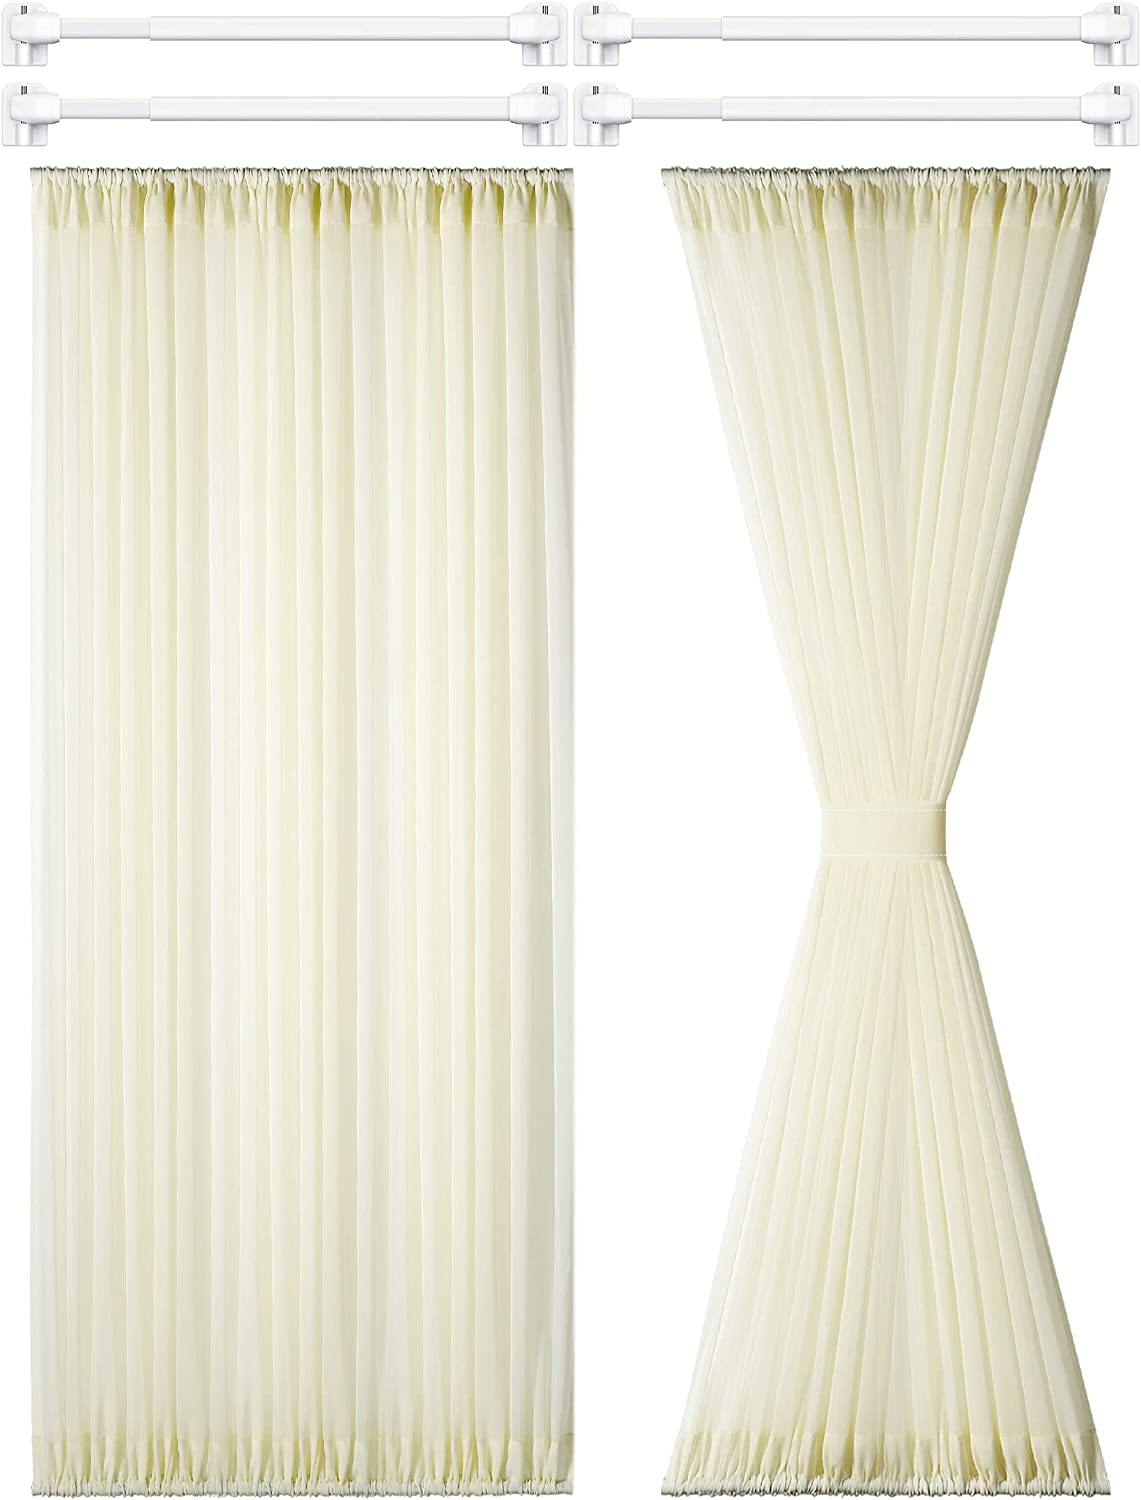 2 Pieces French Door Panel Curtain Sheer Voile Rod Pocket Curtain Panel with 4 Pieces Adjustable Curtain Rod and 8 Pieces Adhesive Curtain Rod Hooks for Home Decoration (Beige,54 x 72 Inches)